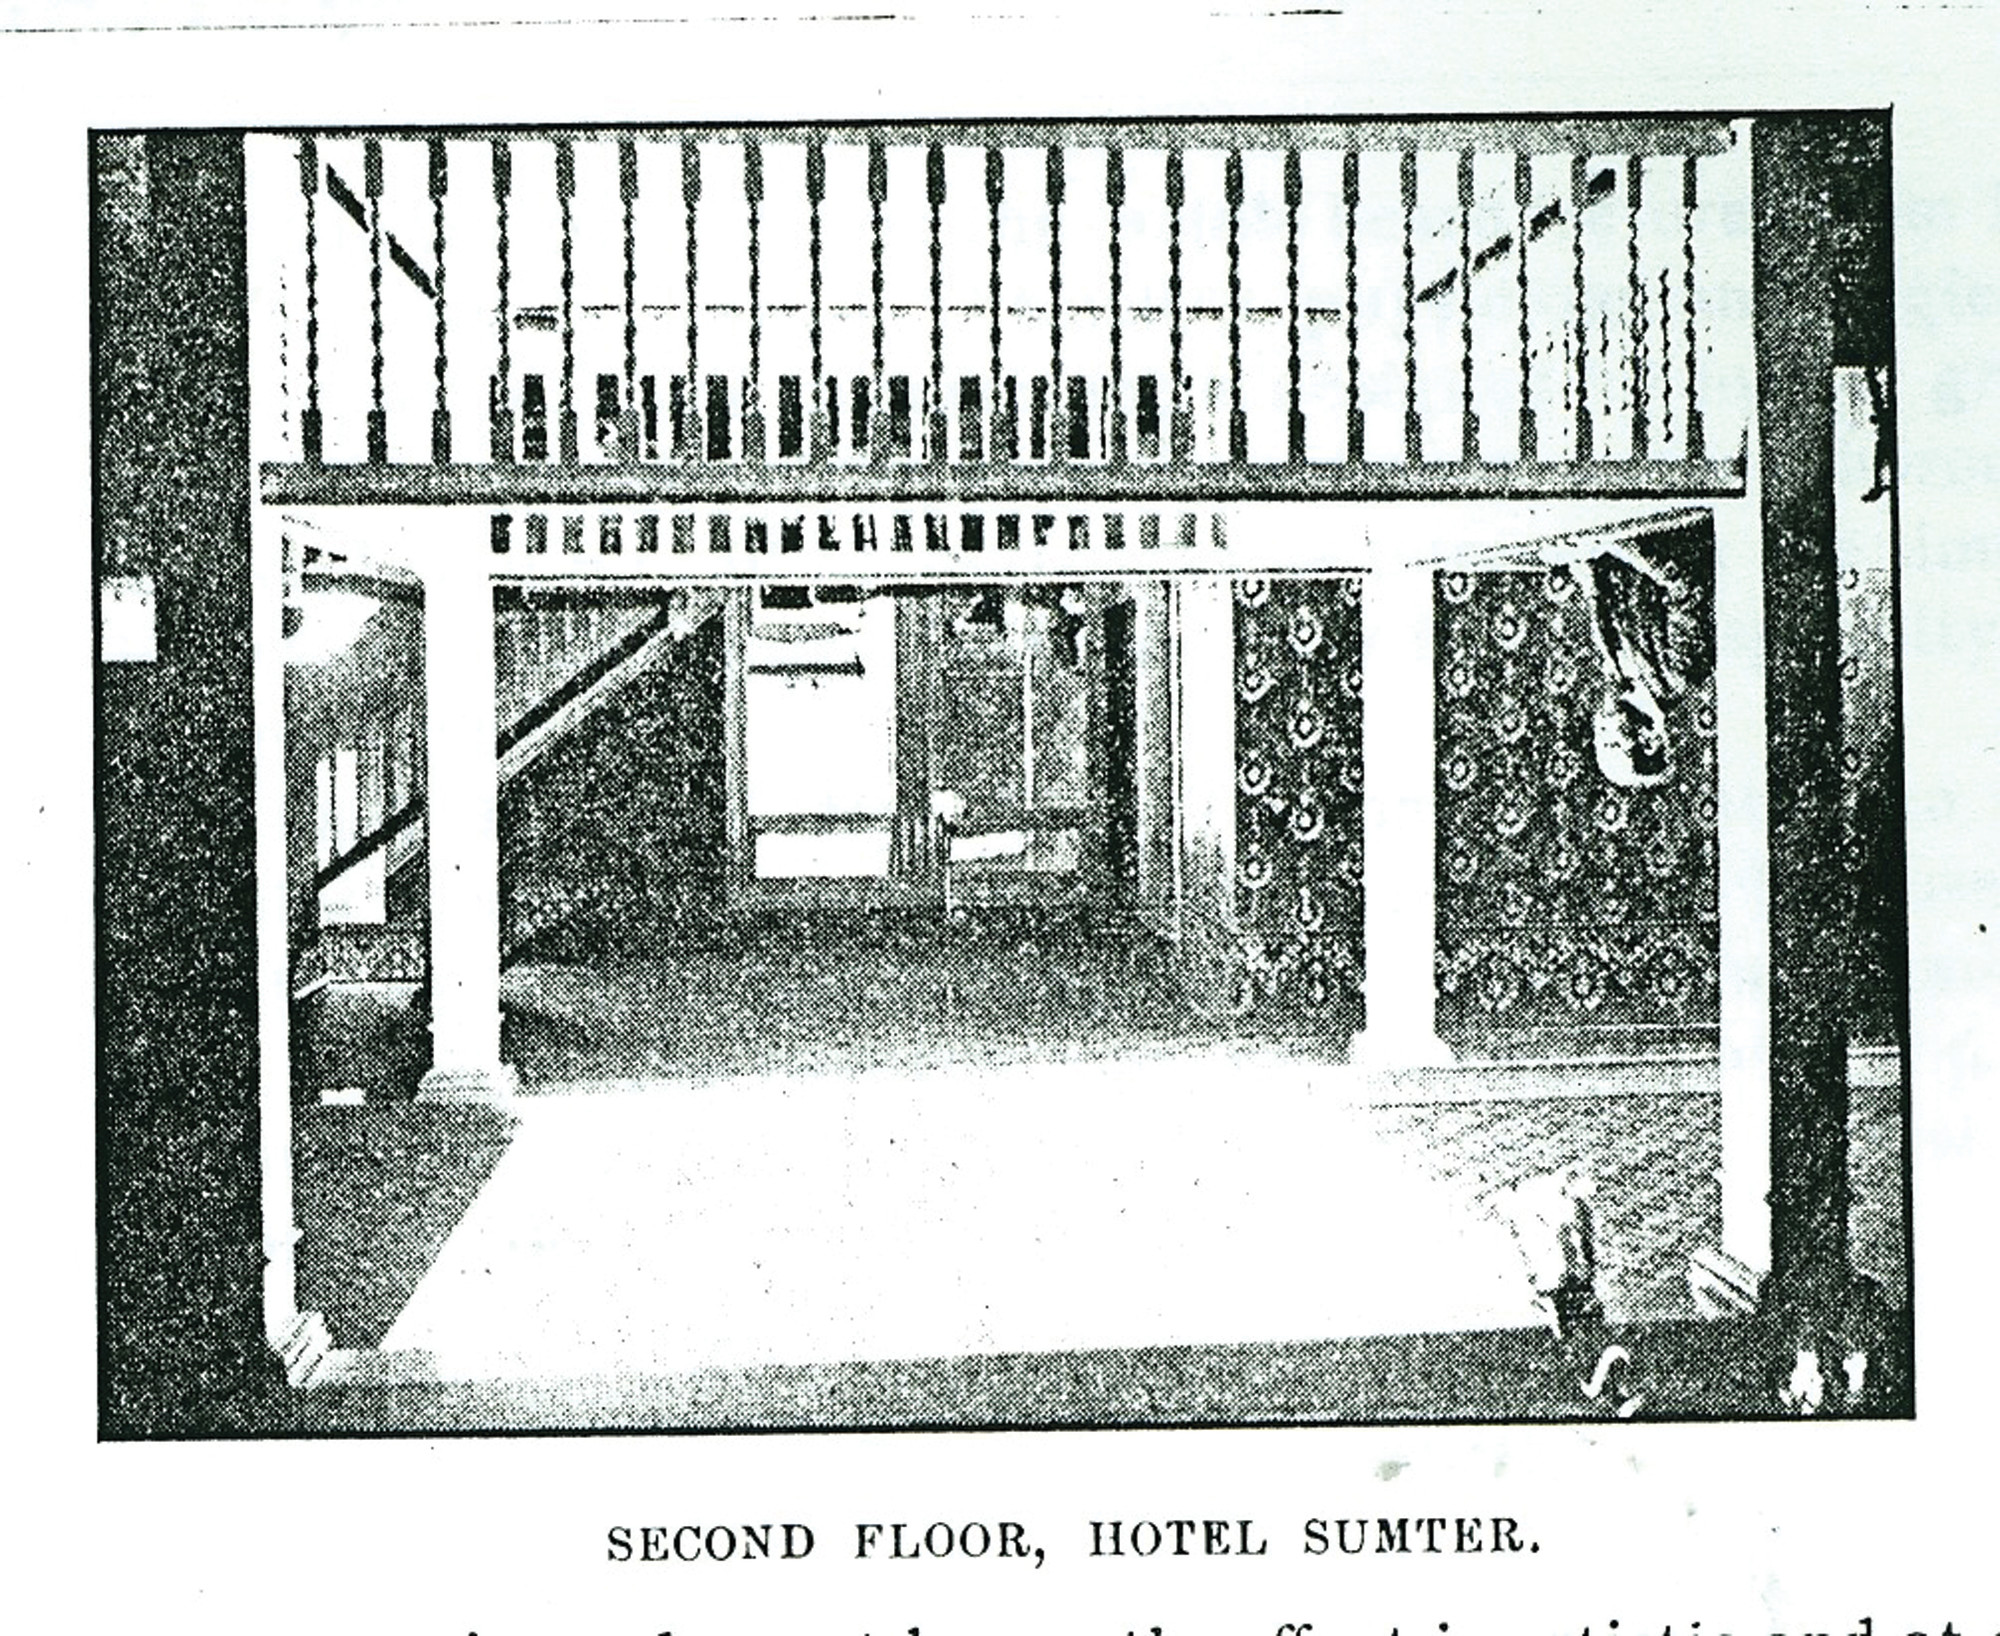 The second floor of Hotel Sumter is seen.